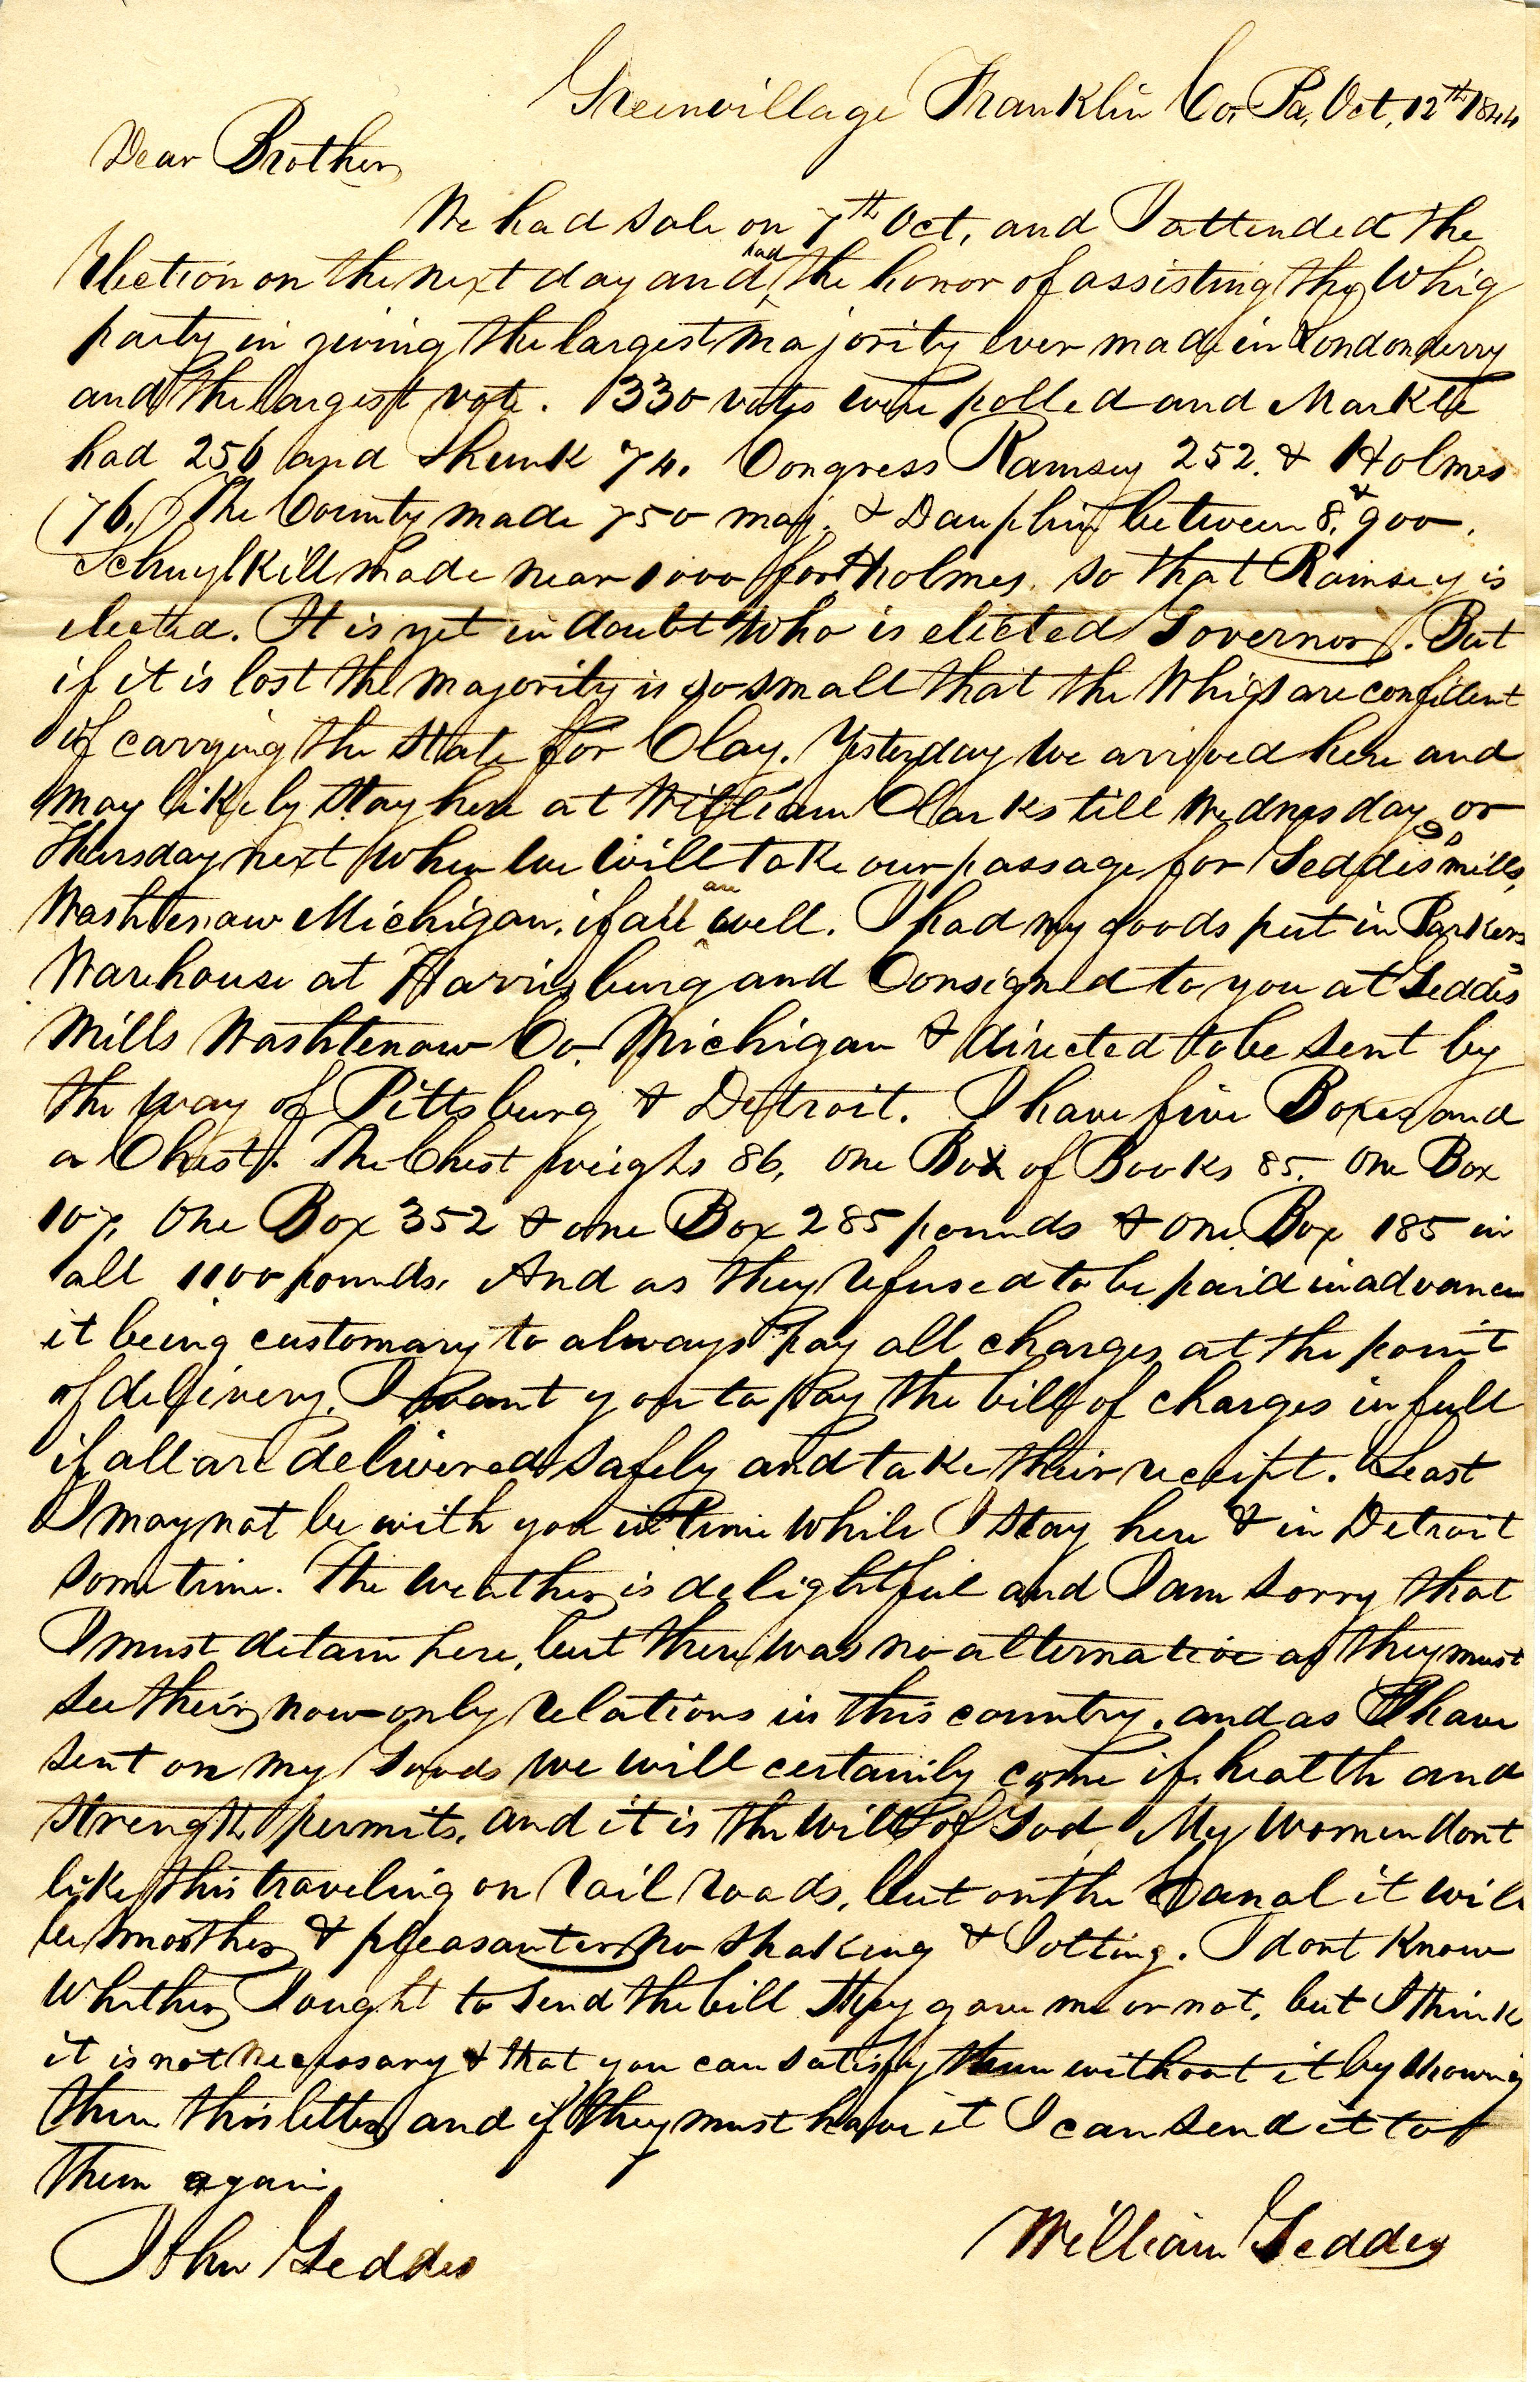 Letter From William Geddes to John Geddes, October 12, 1844 image